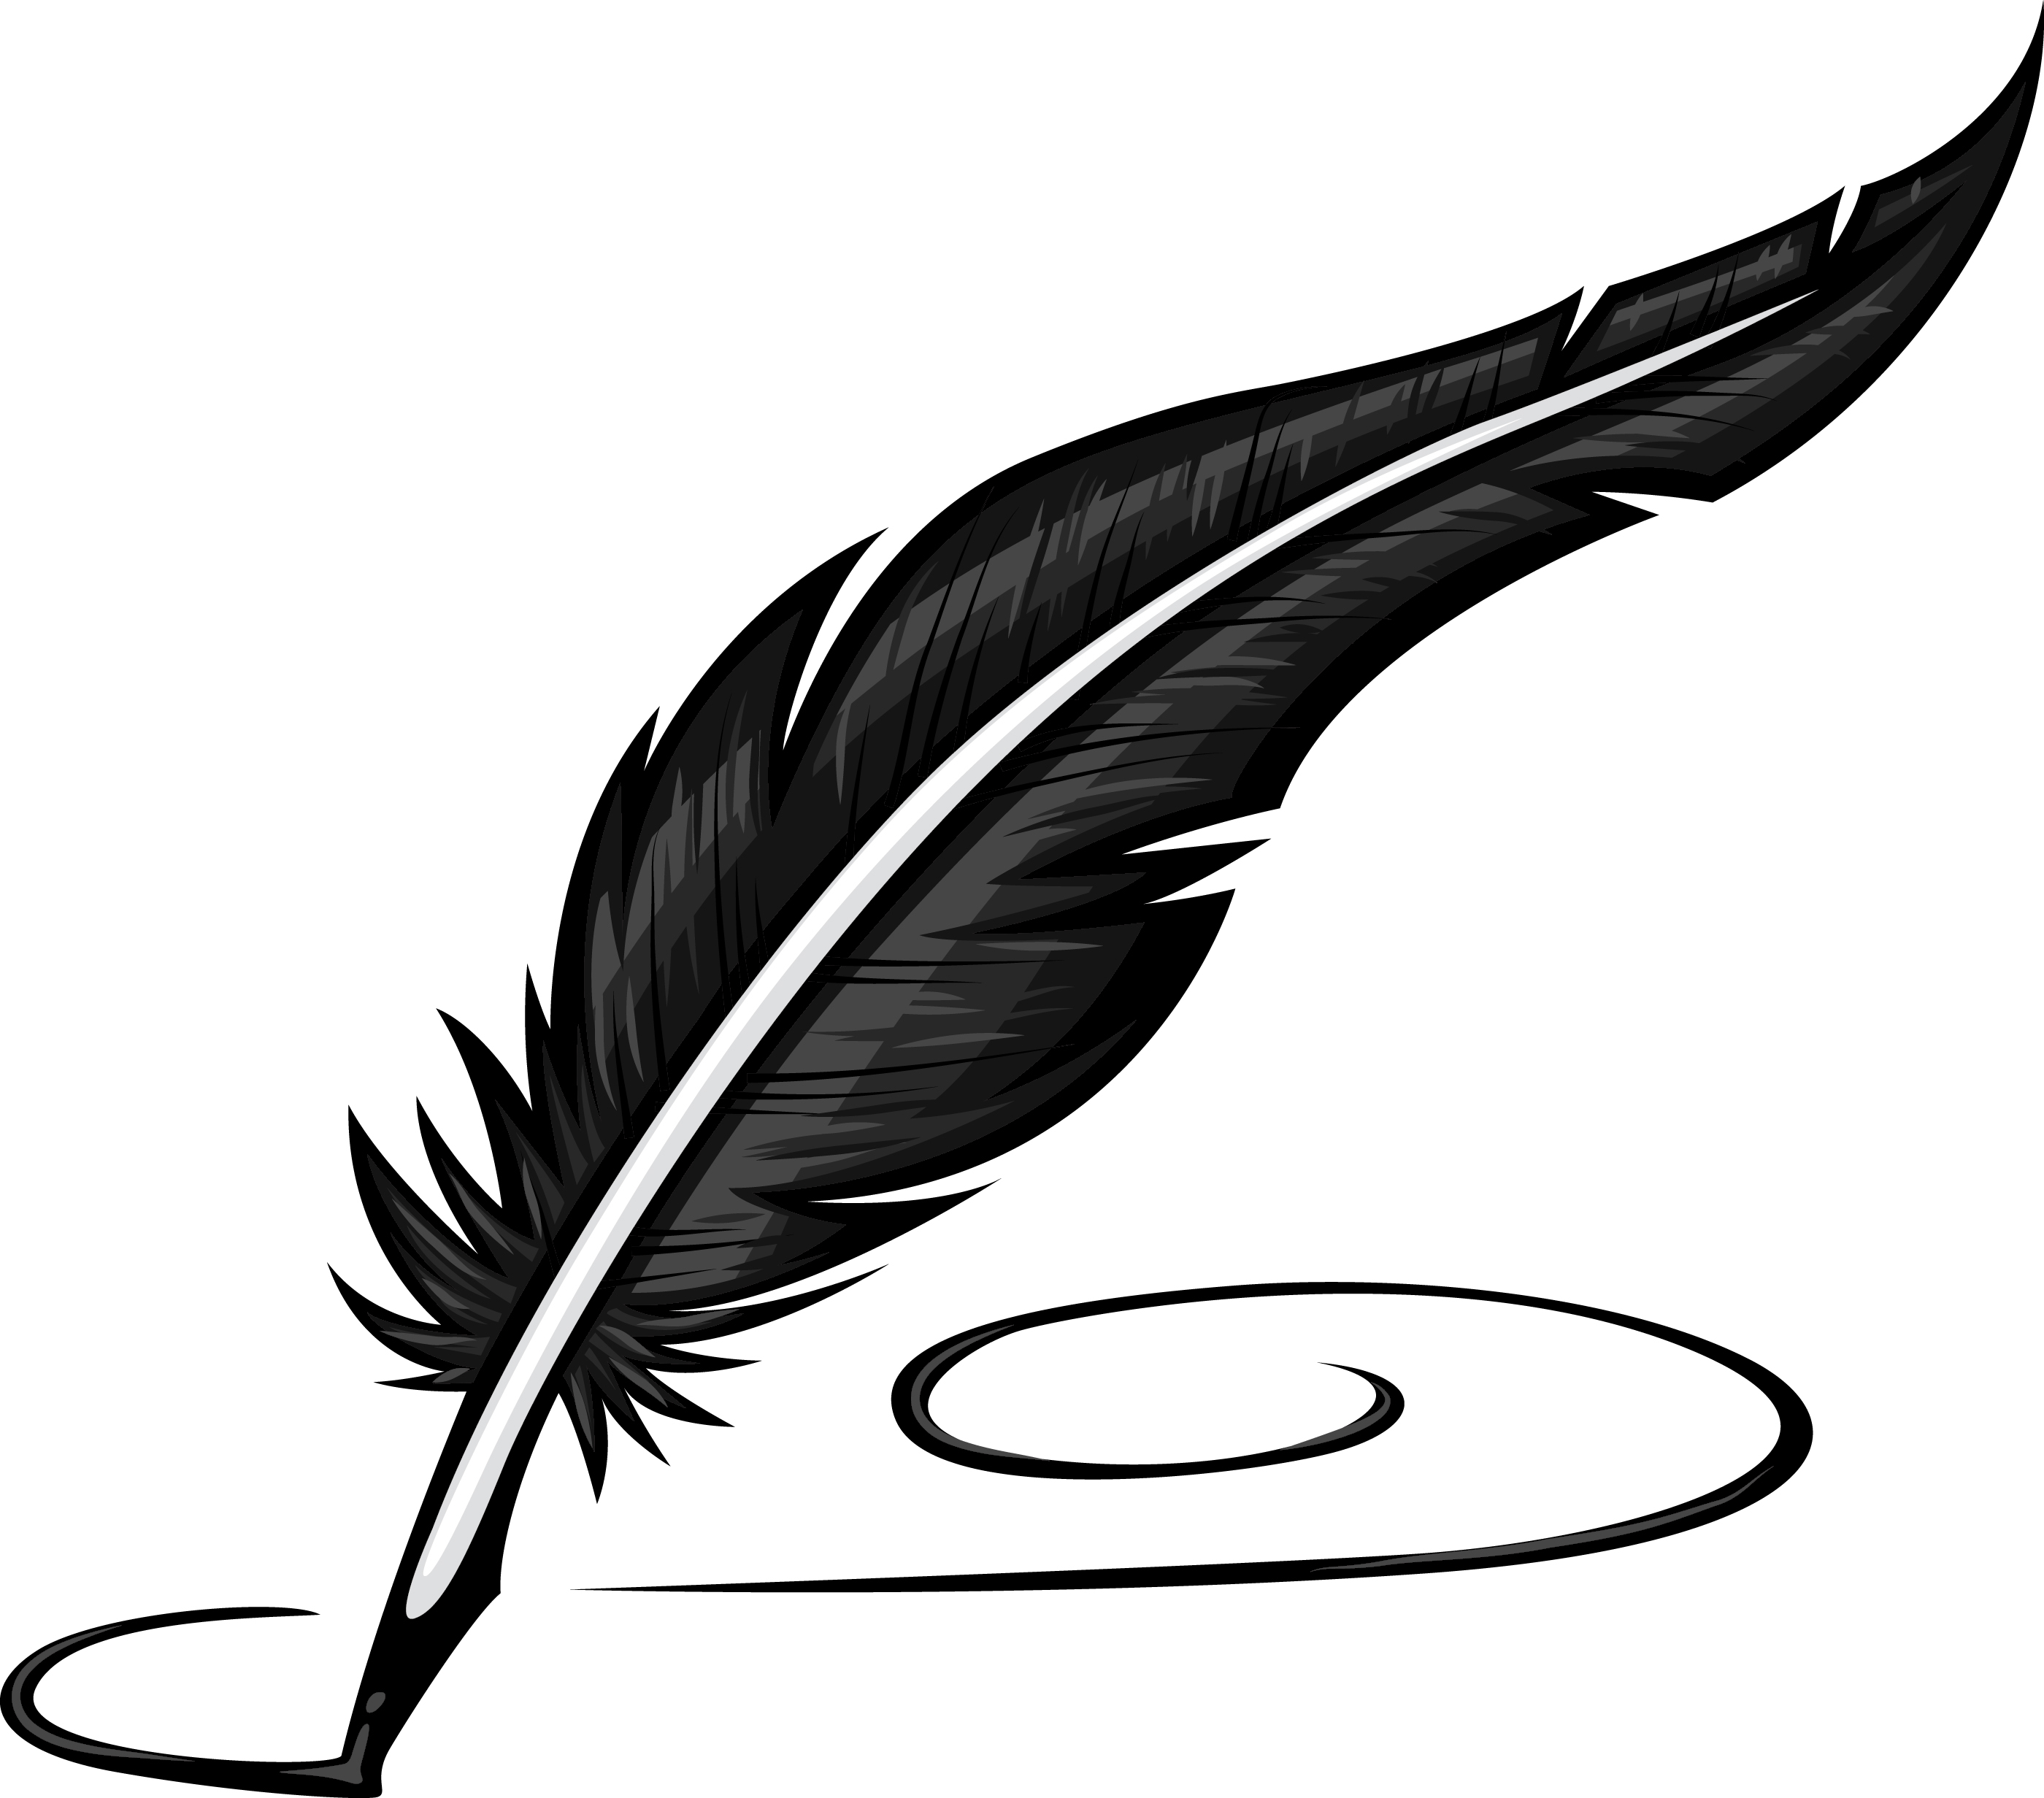 feather-pen-clipart-1